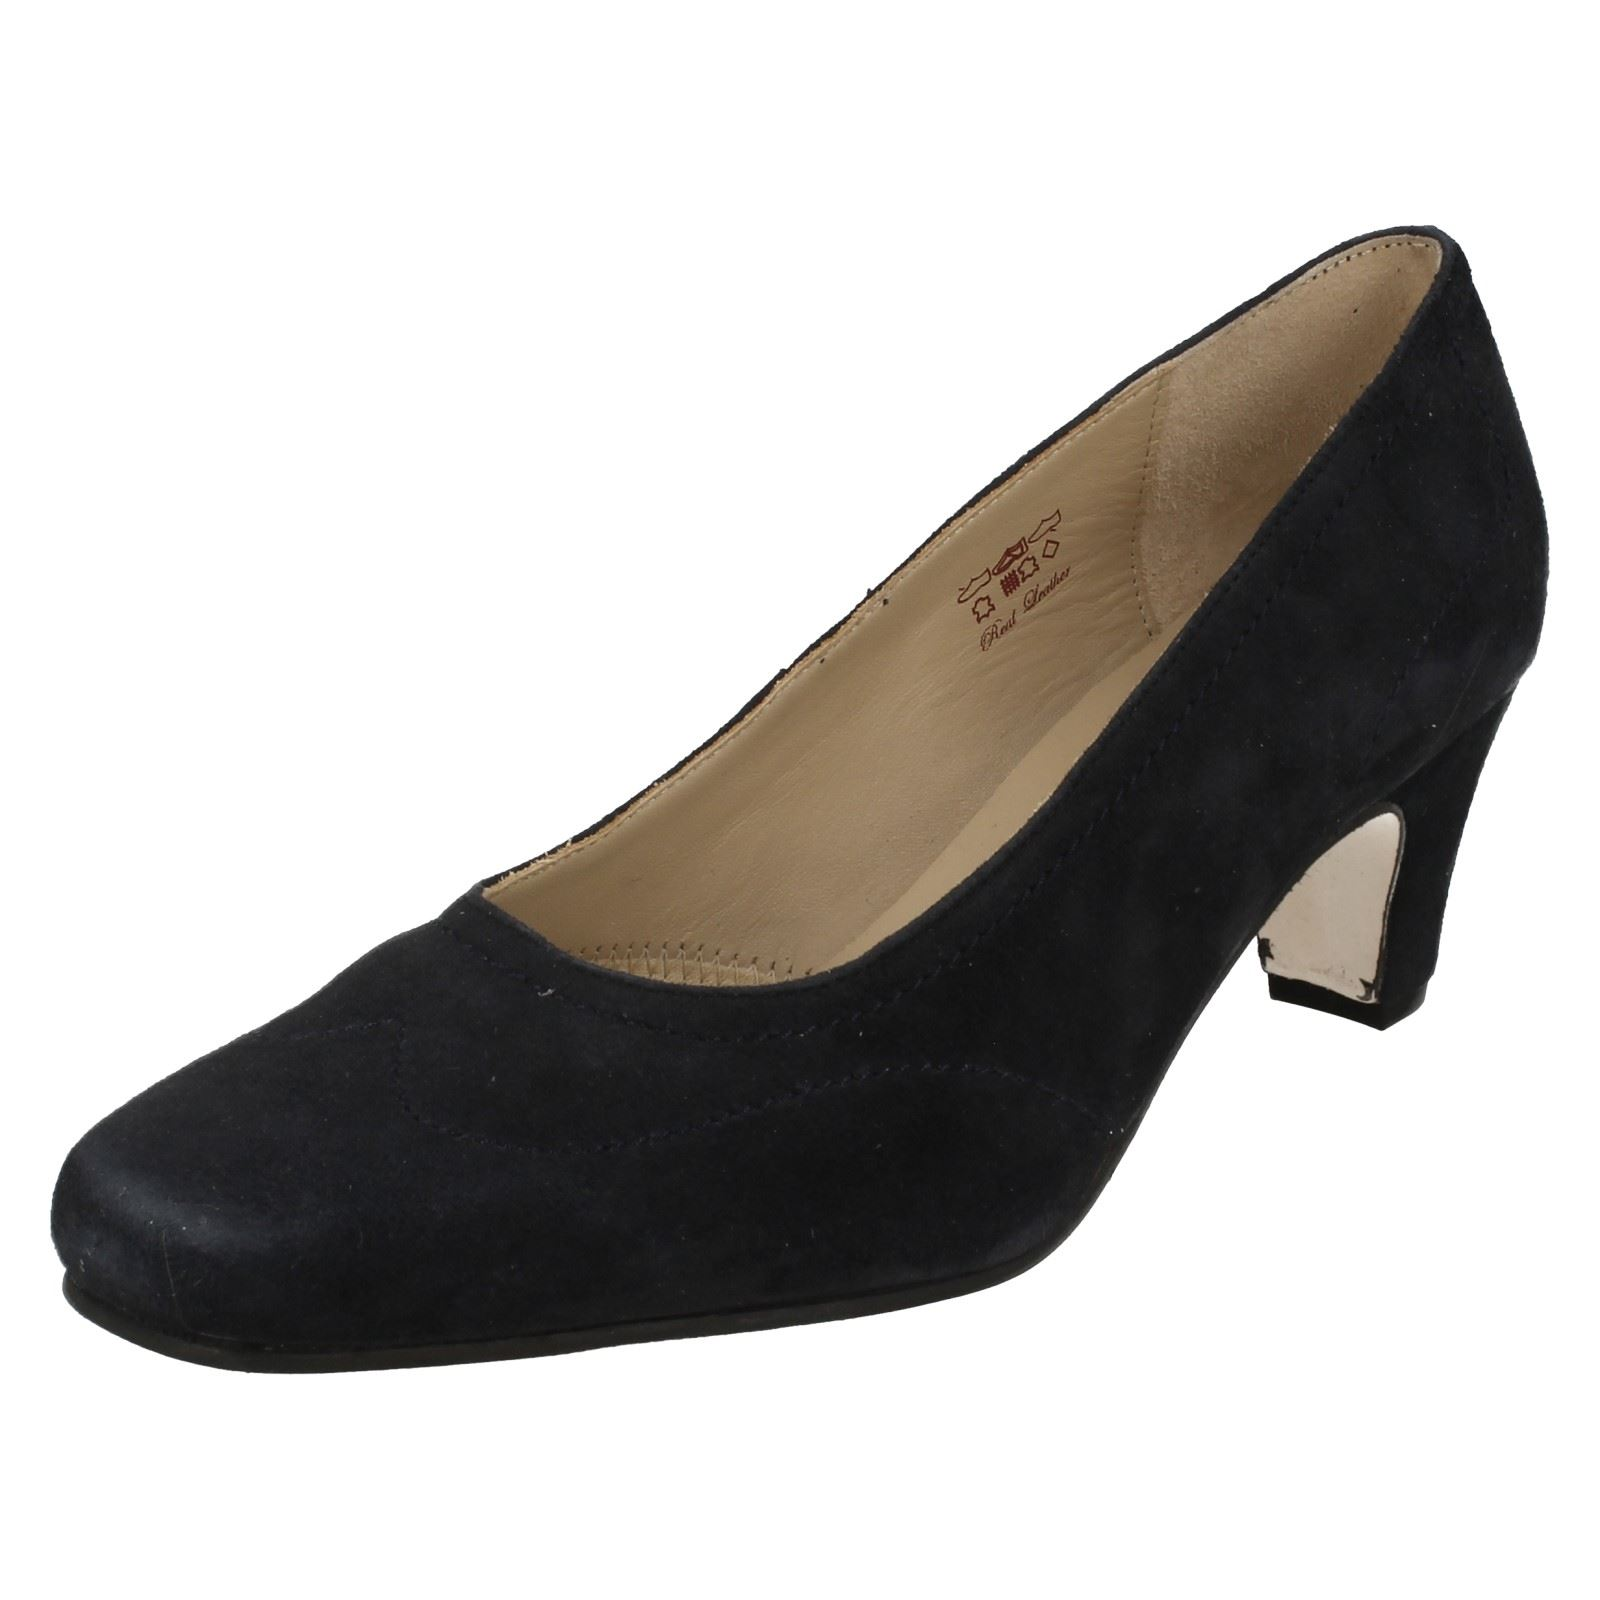 7ec6b5a4c Ladies Equity Wide Fitting Court Shoes Alison Navy Suede 5 UK E. About this  product. Picture 1 of 10  Picture 2 of 10 ...